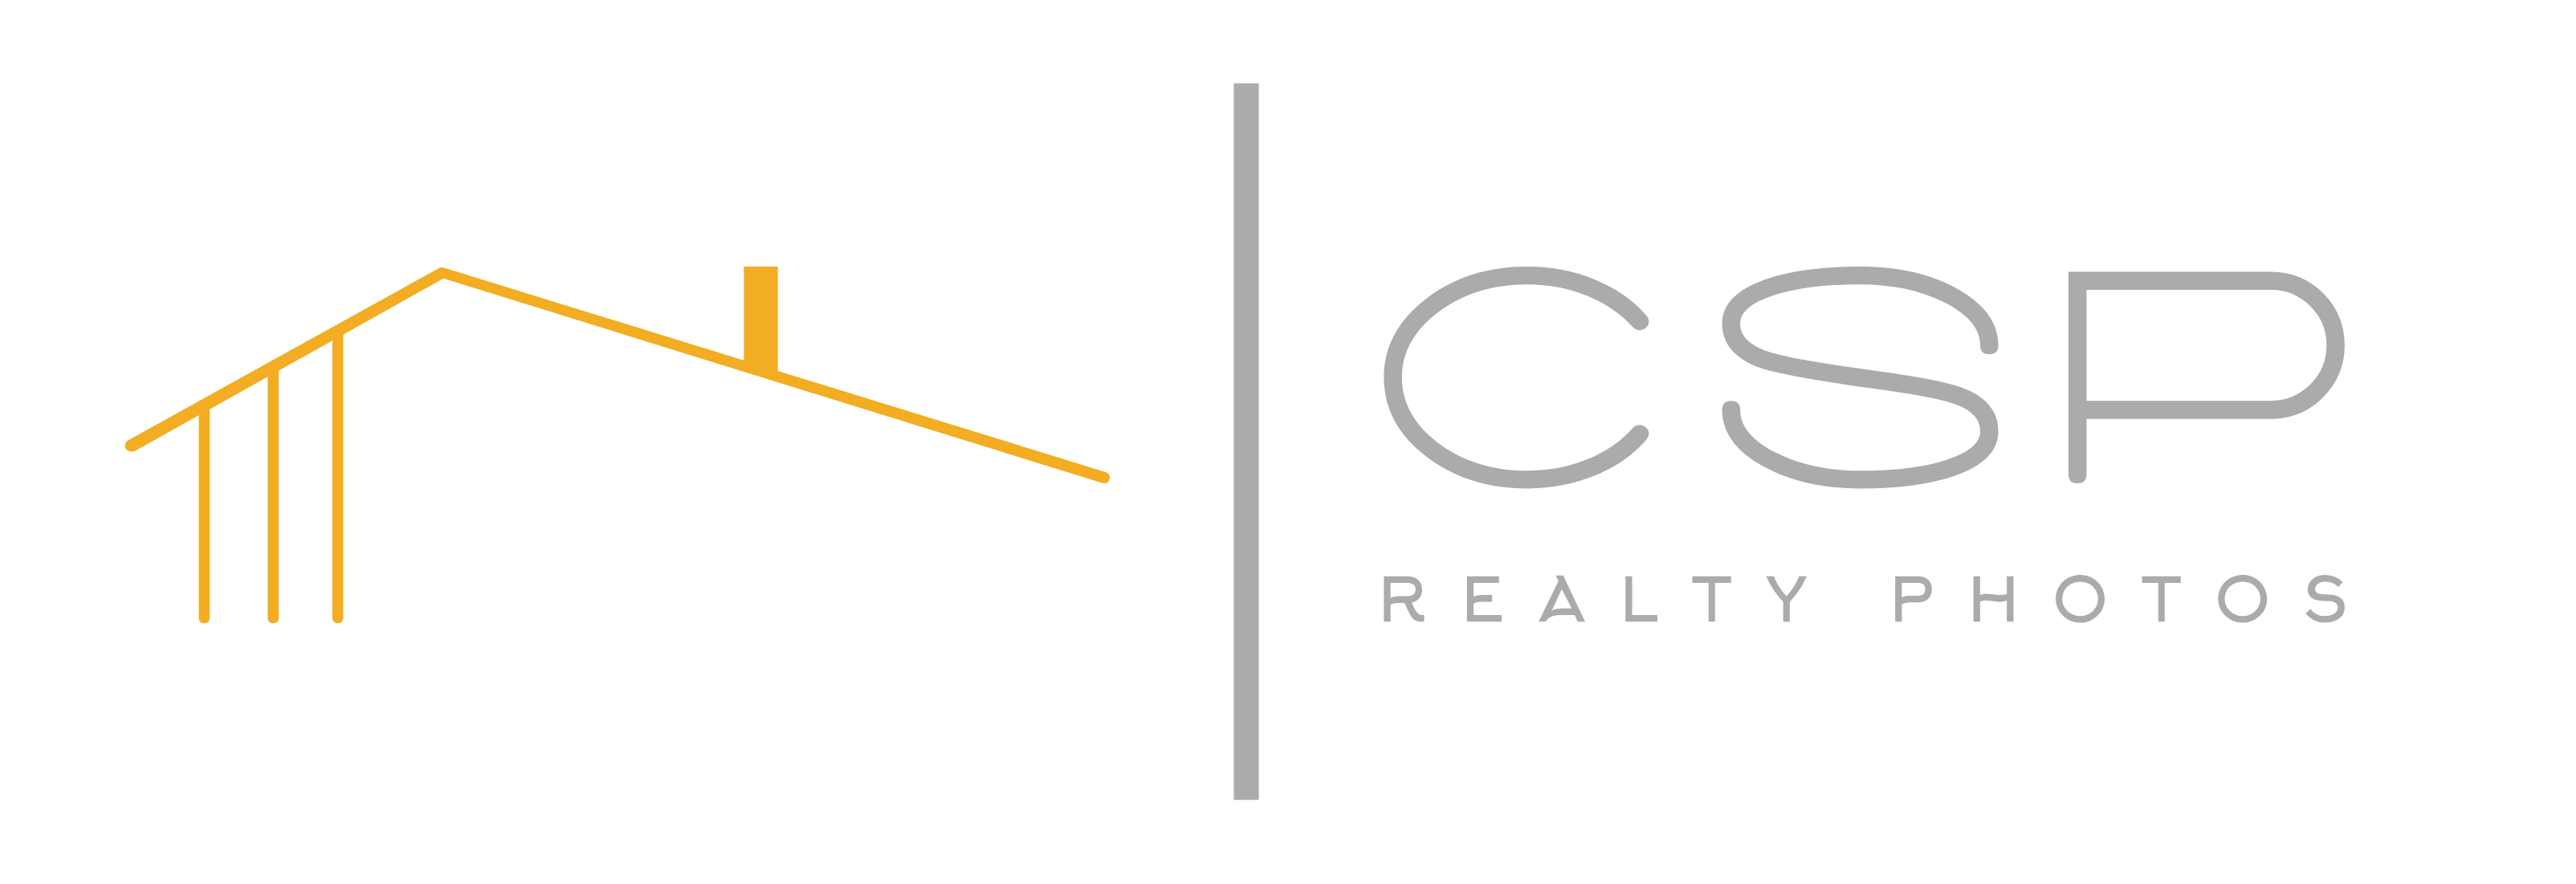 CSP Realty Photos